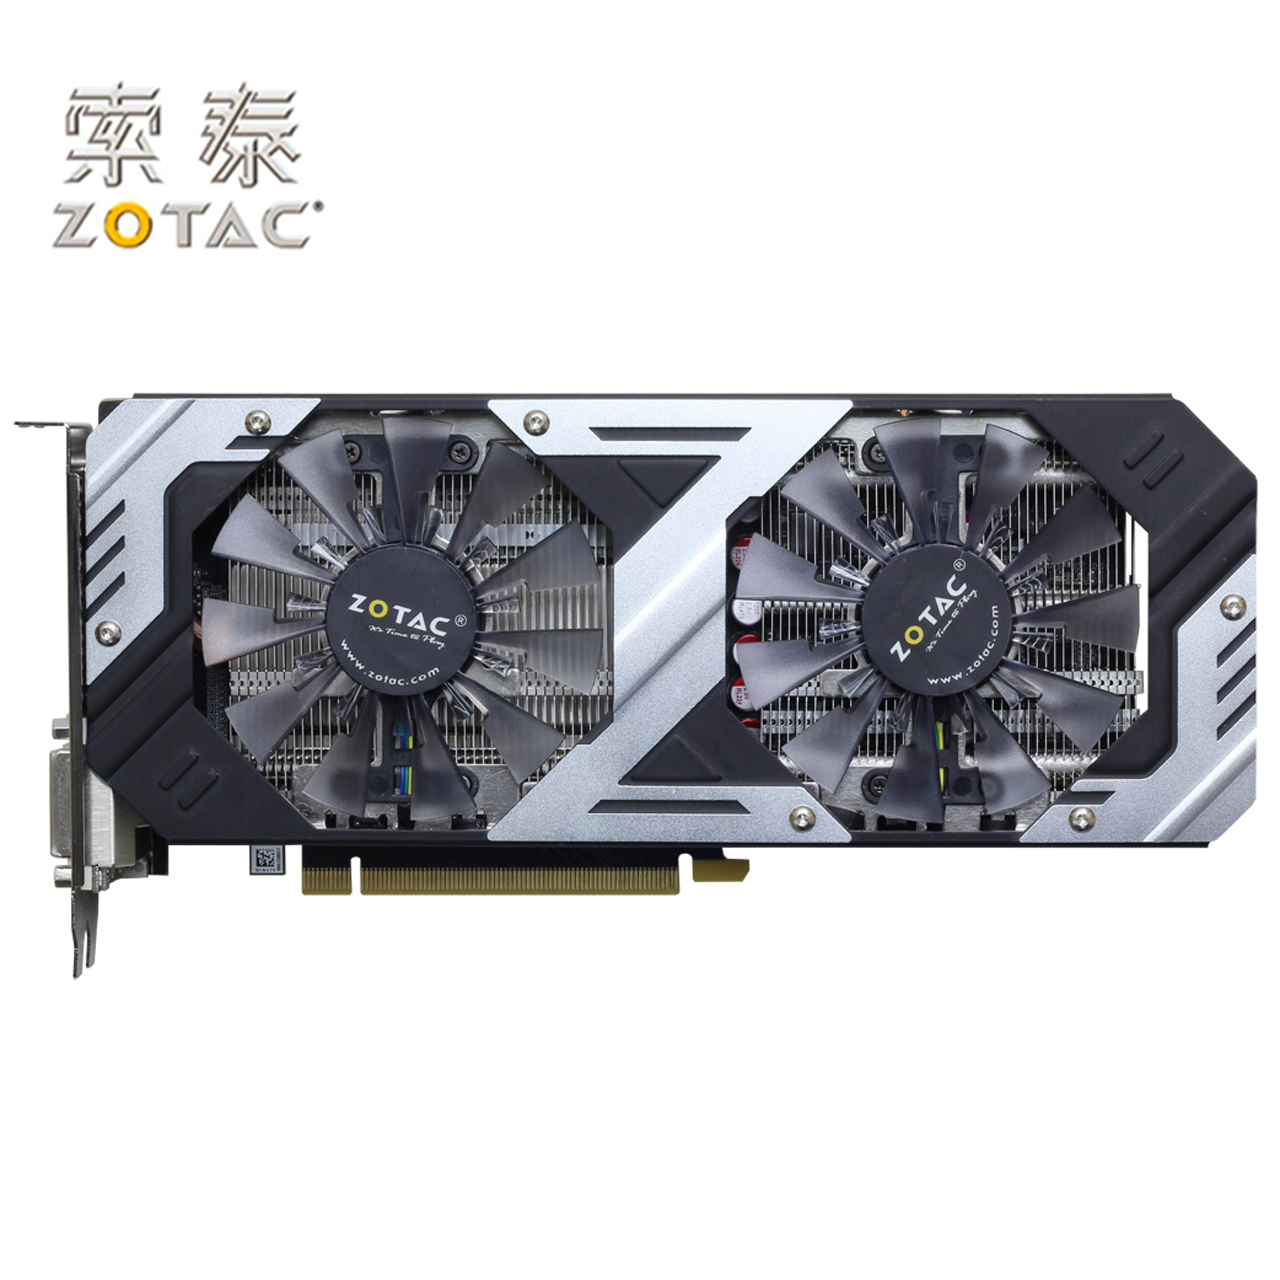 Original <font><b>ZOTAC</b></font> GeForce GTX960-4GD5 Graphics Card Thunderbolt HA For NVIDIA GTX900 GTX960 4GD5 4G Video Cards 7010MHz GM206 Used image